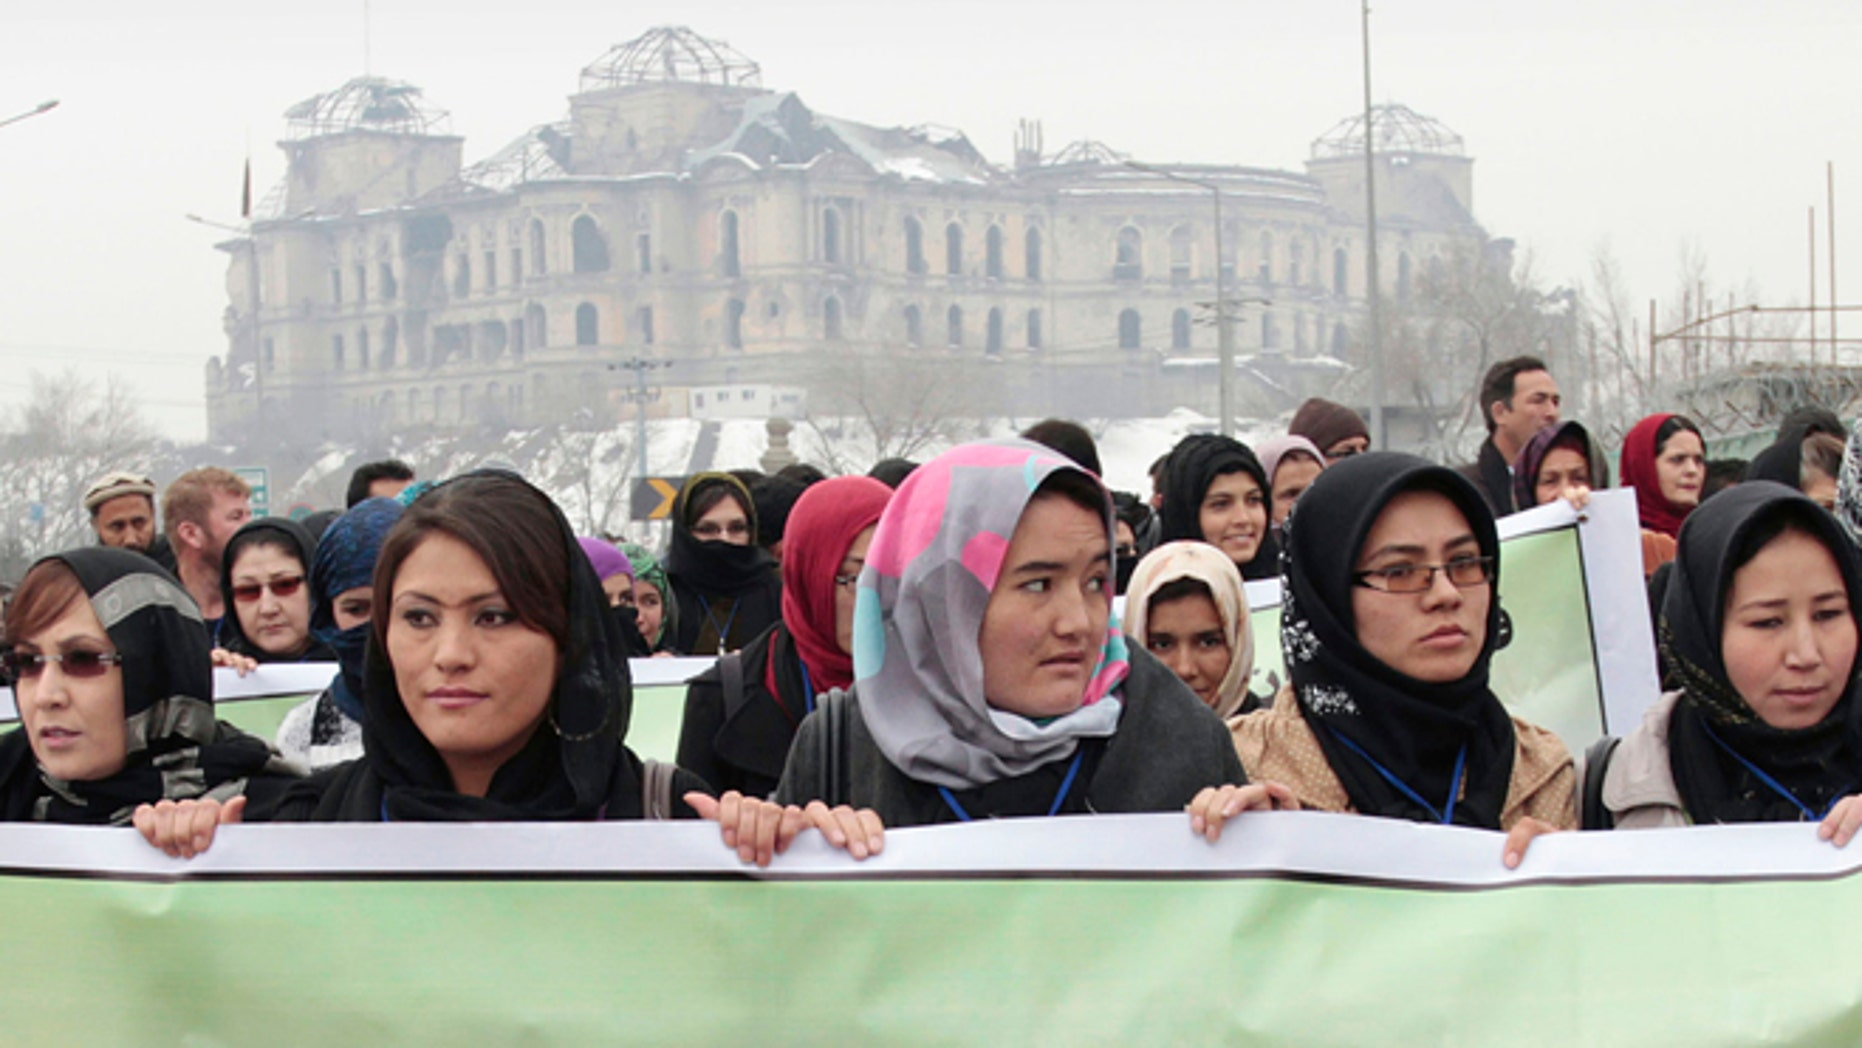 Feb. 14, 2013: Afghan women carry a banner during a march calling for end of violence against women, in Kabul, with the Darul Aman palace seen in the background, Afghanistan.